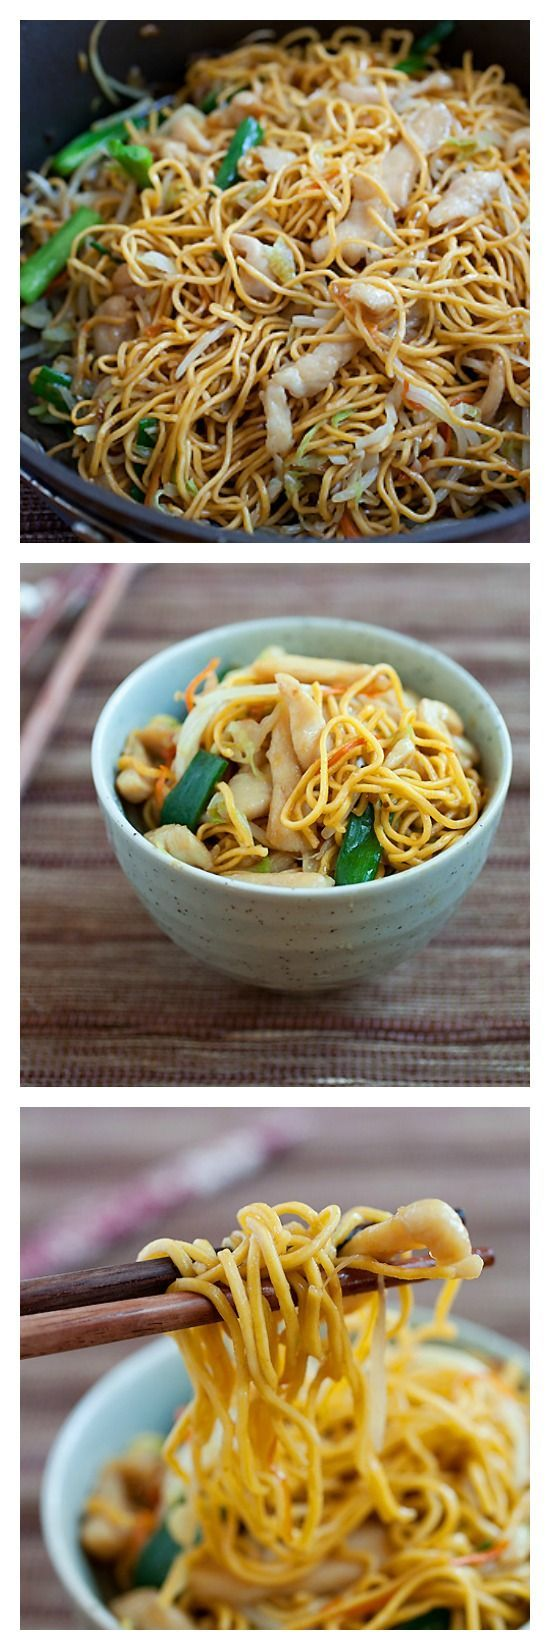 China crazy delicious chicken chow mein try this easy 15 minute china crazy delicious chicken chow mein try this easy 15 minute recipe forumfinder Images